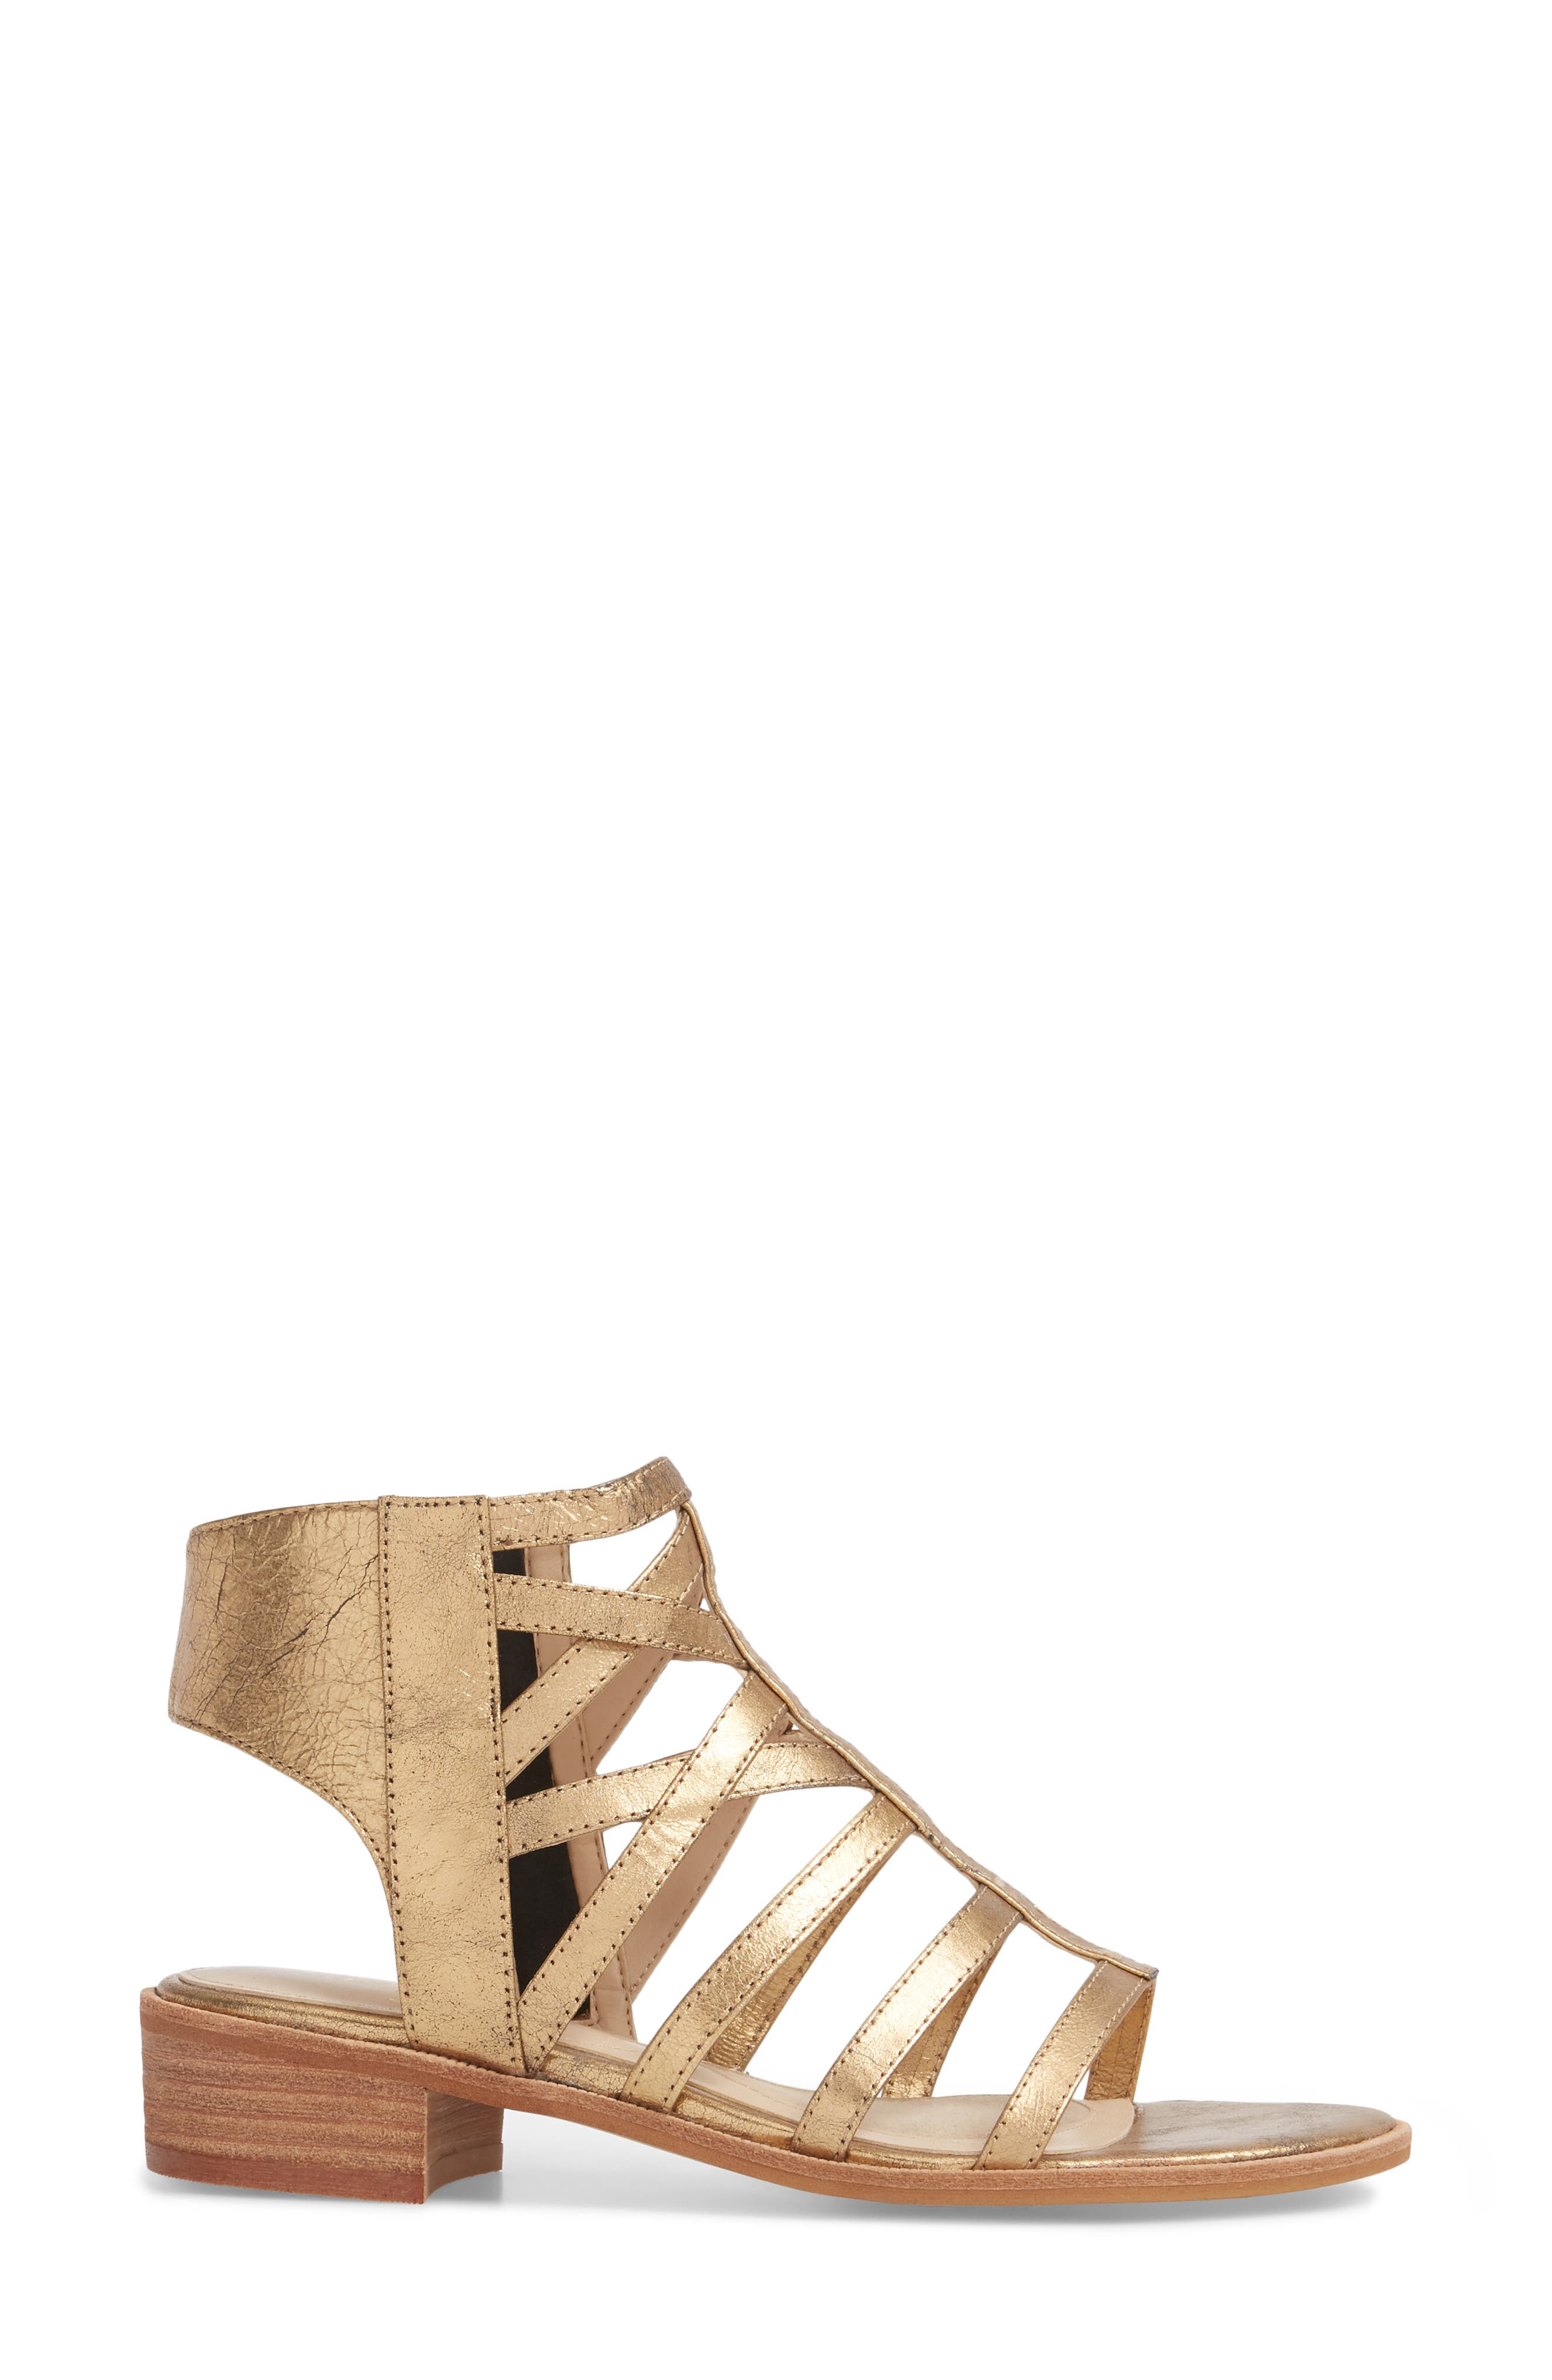 Genesis Cage Sandal,                             Alternate thumbnail 3, color,                             OLD GOLD LEATHER